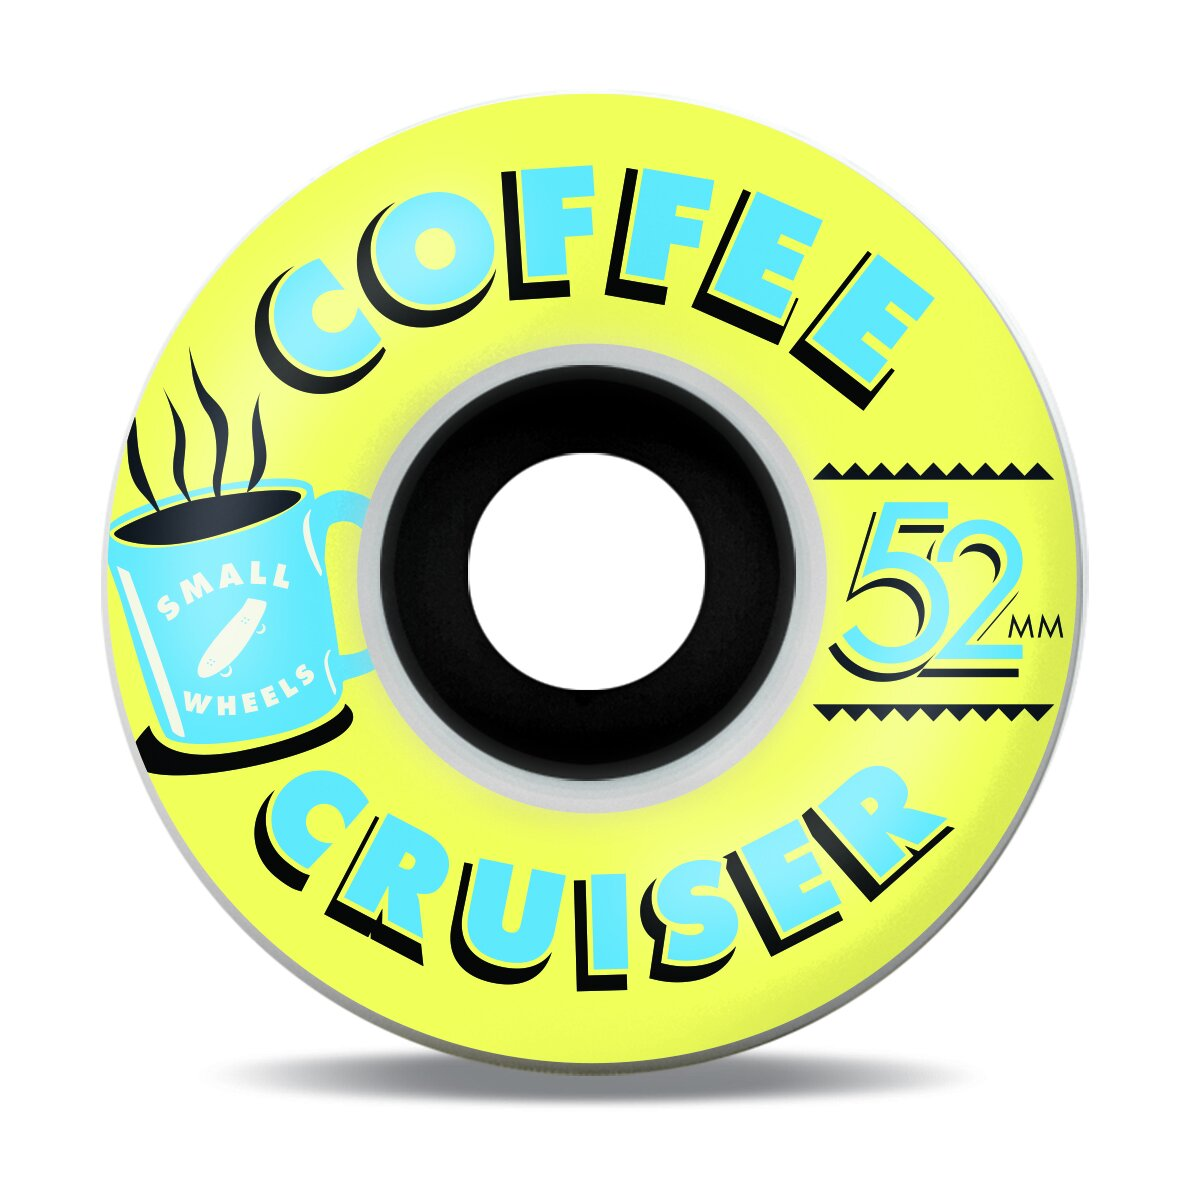 SML Wheels Coffee Cruiser 78a Golden Hour 52mm